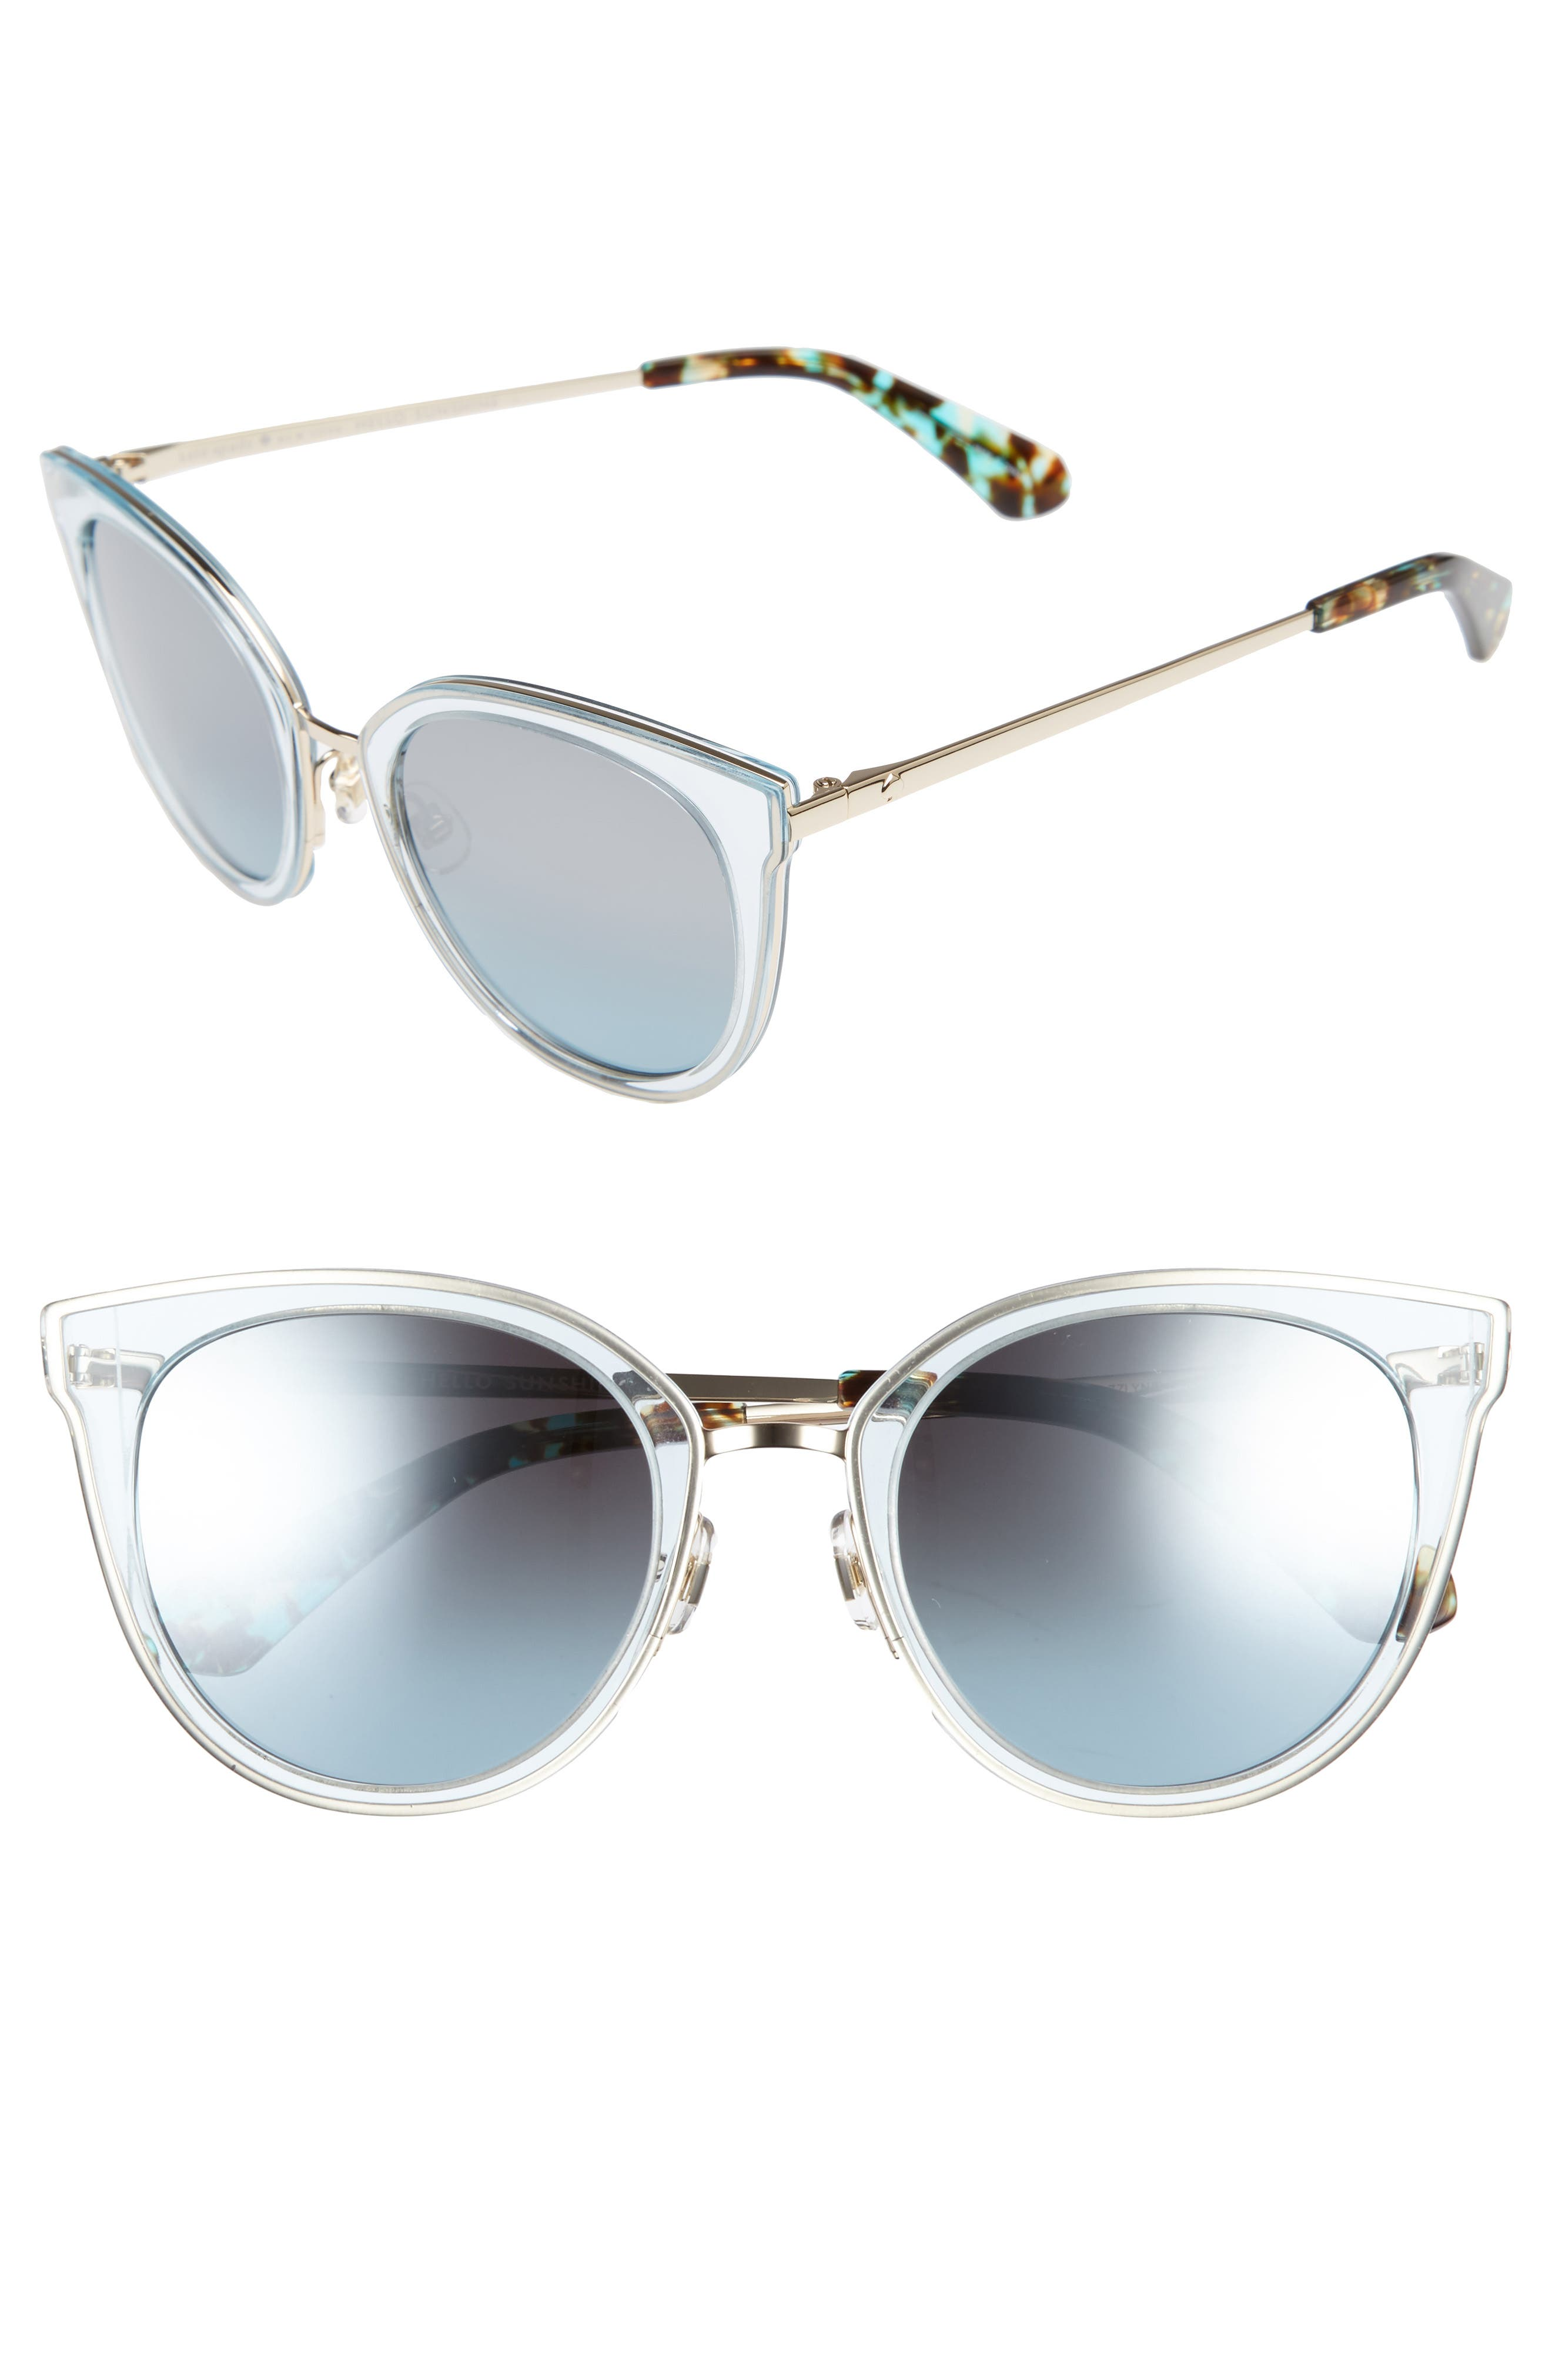 jazzlyn 51mm cat eye sunglasses,                         Main,                         color, BLUE/ GOLD